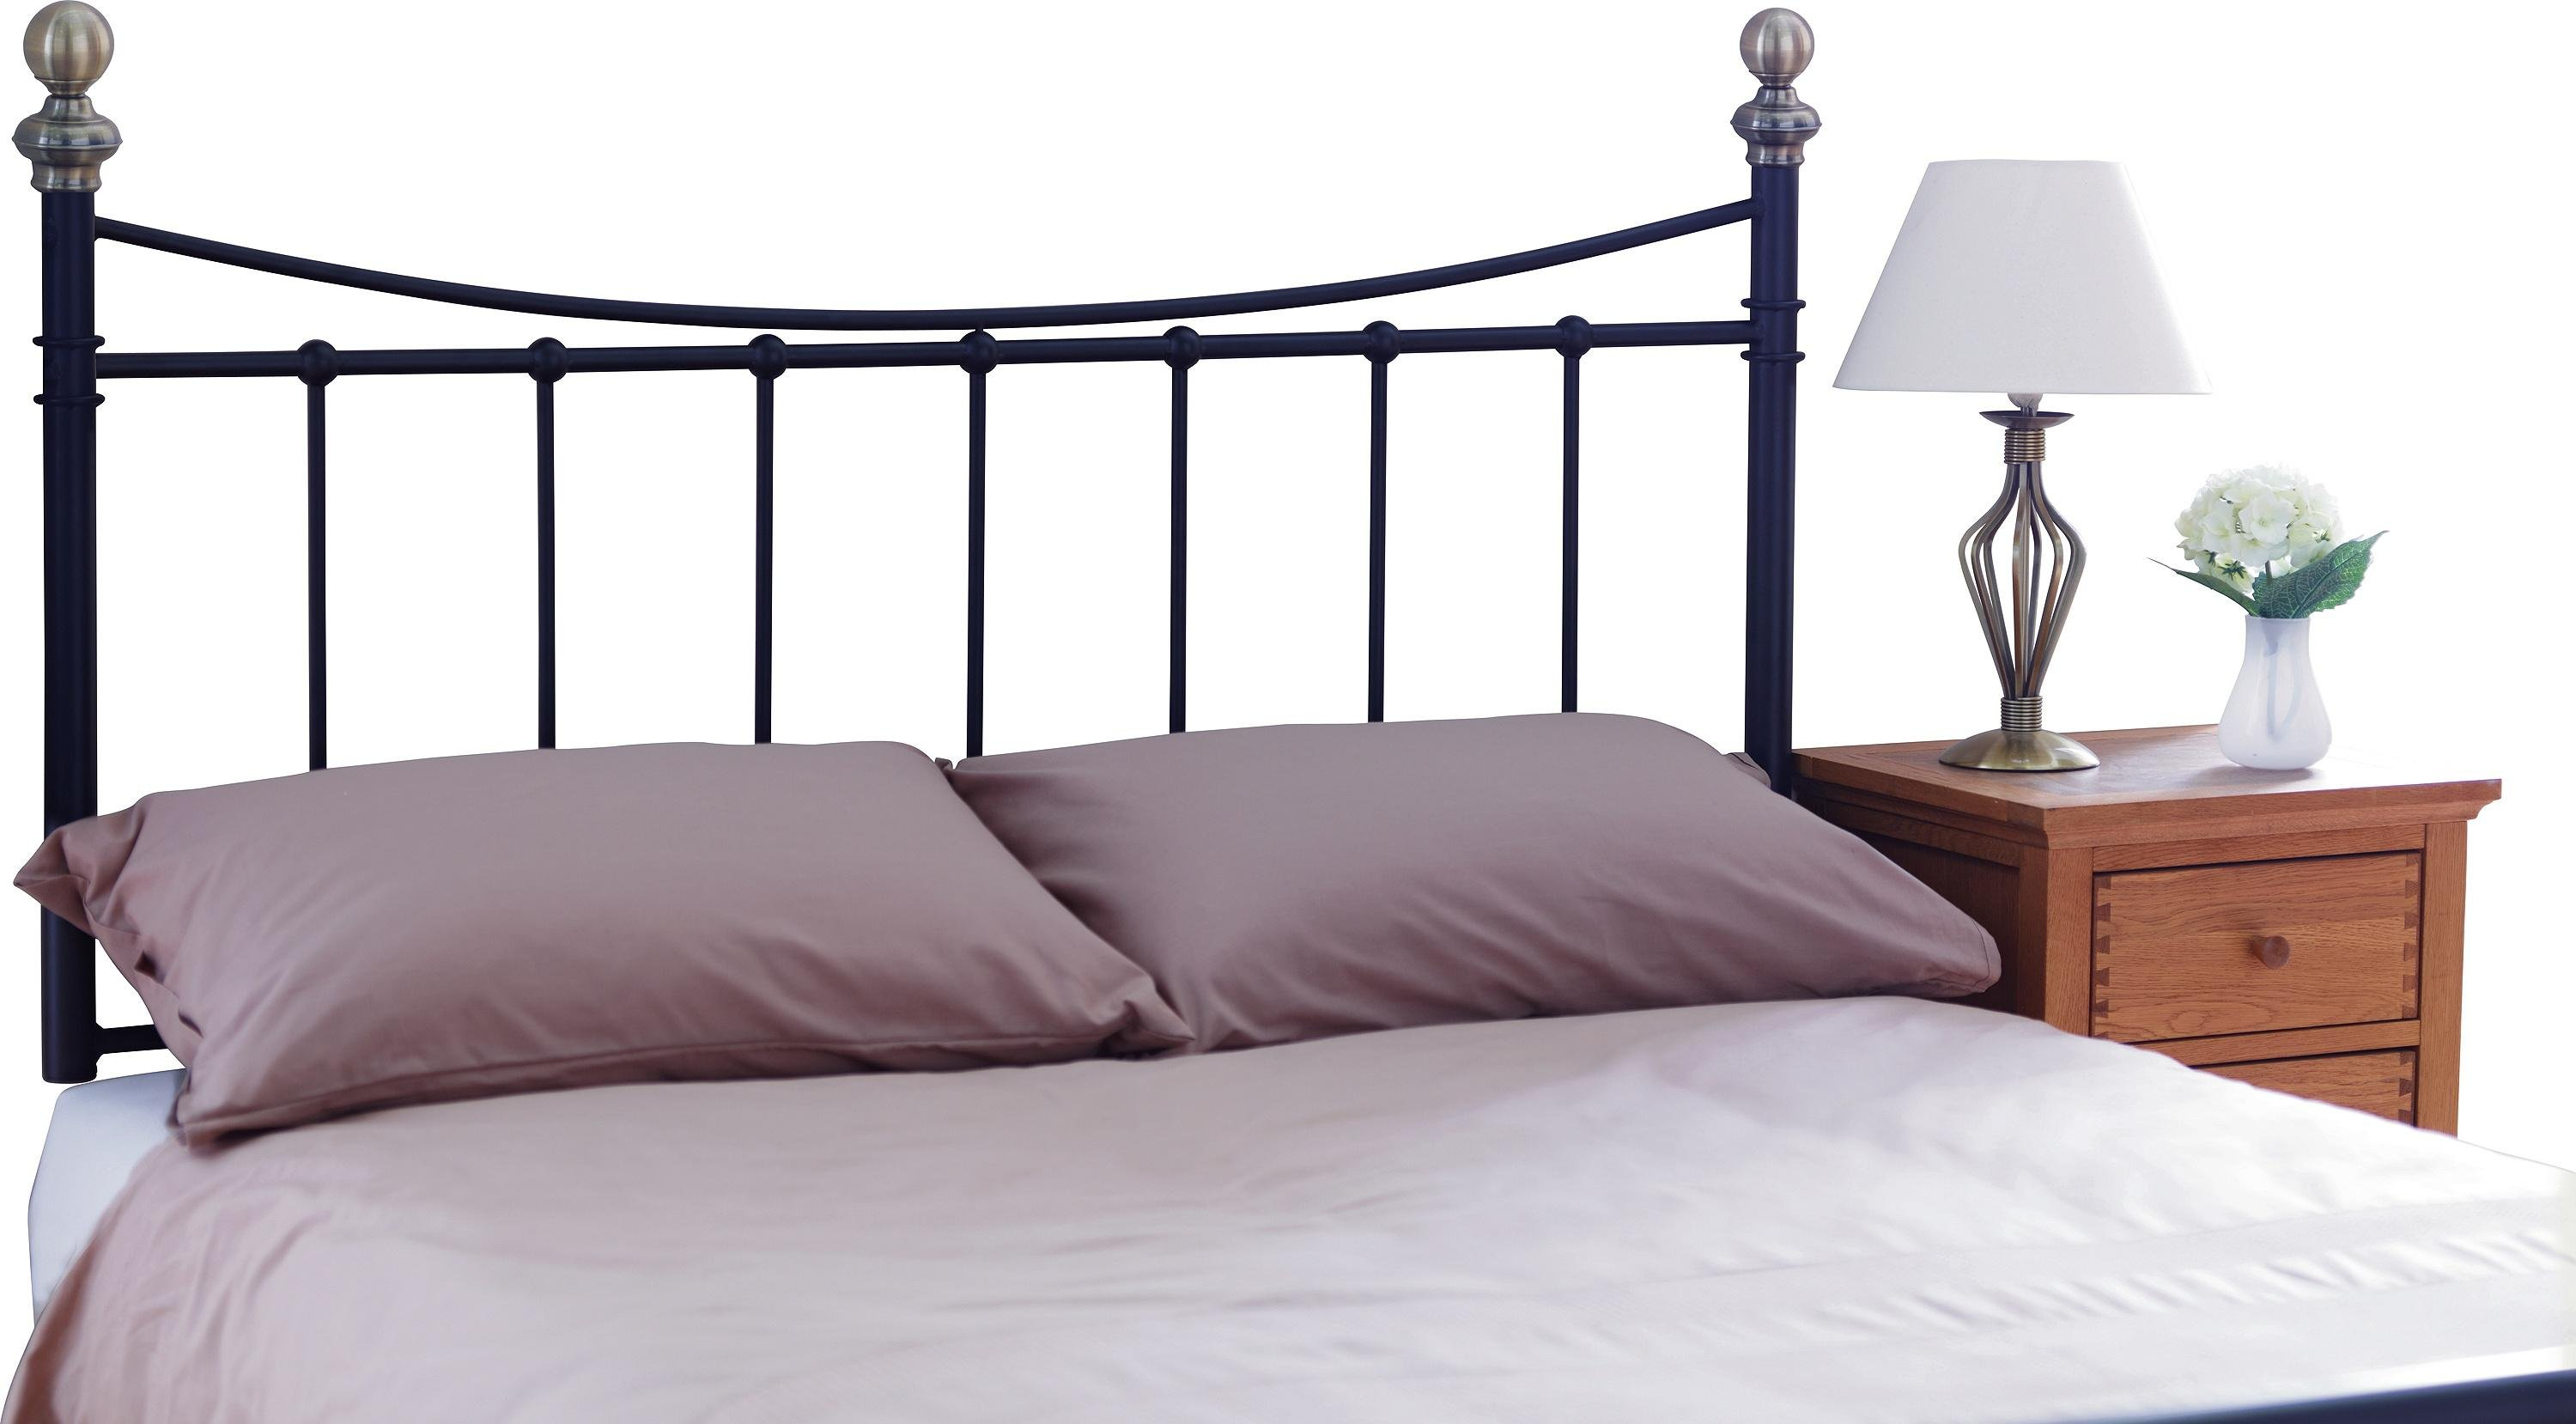 Image of Alderley - Single - Headboard - Black